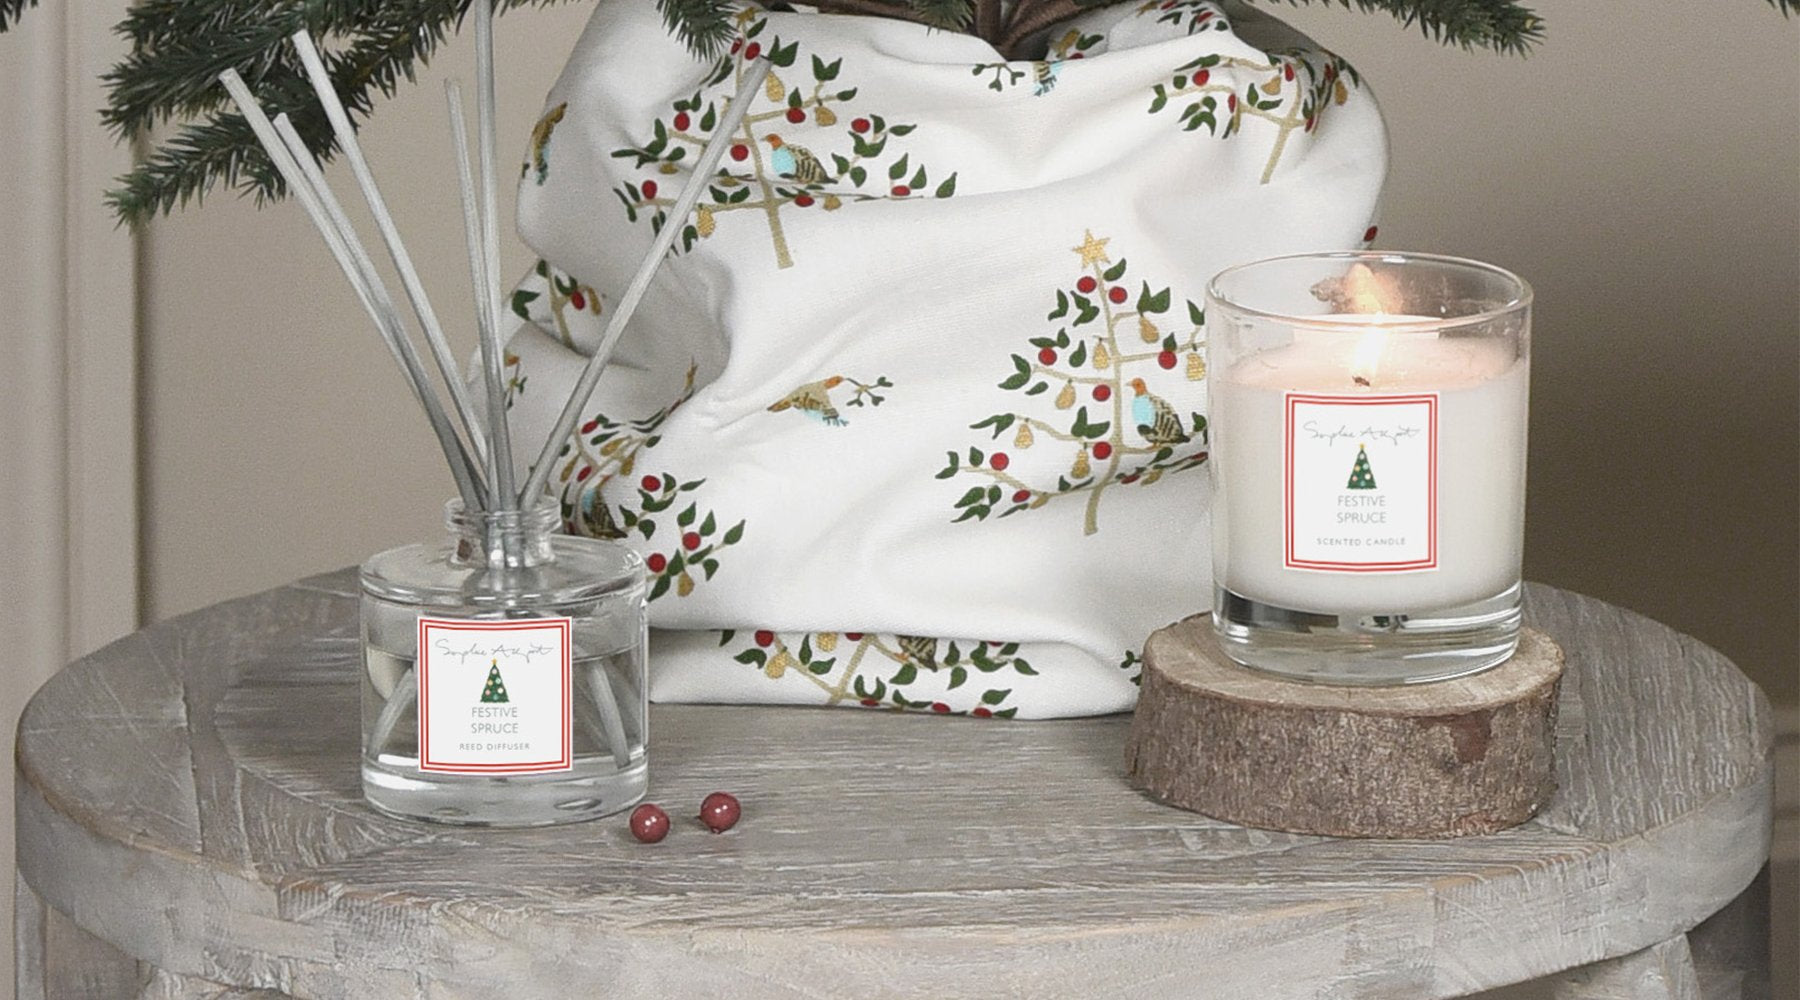 Festive Spruce by Sophie Allport